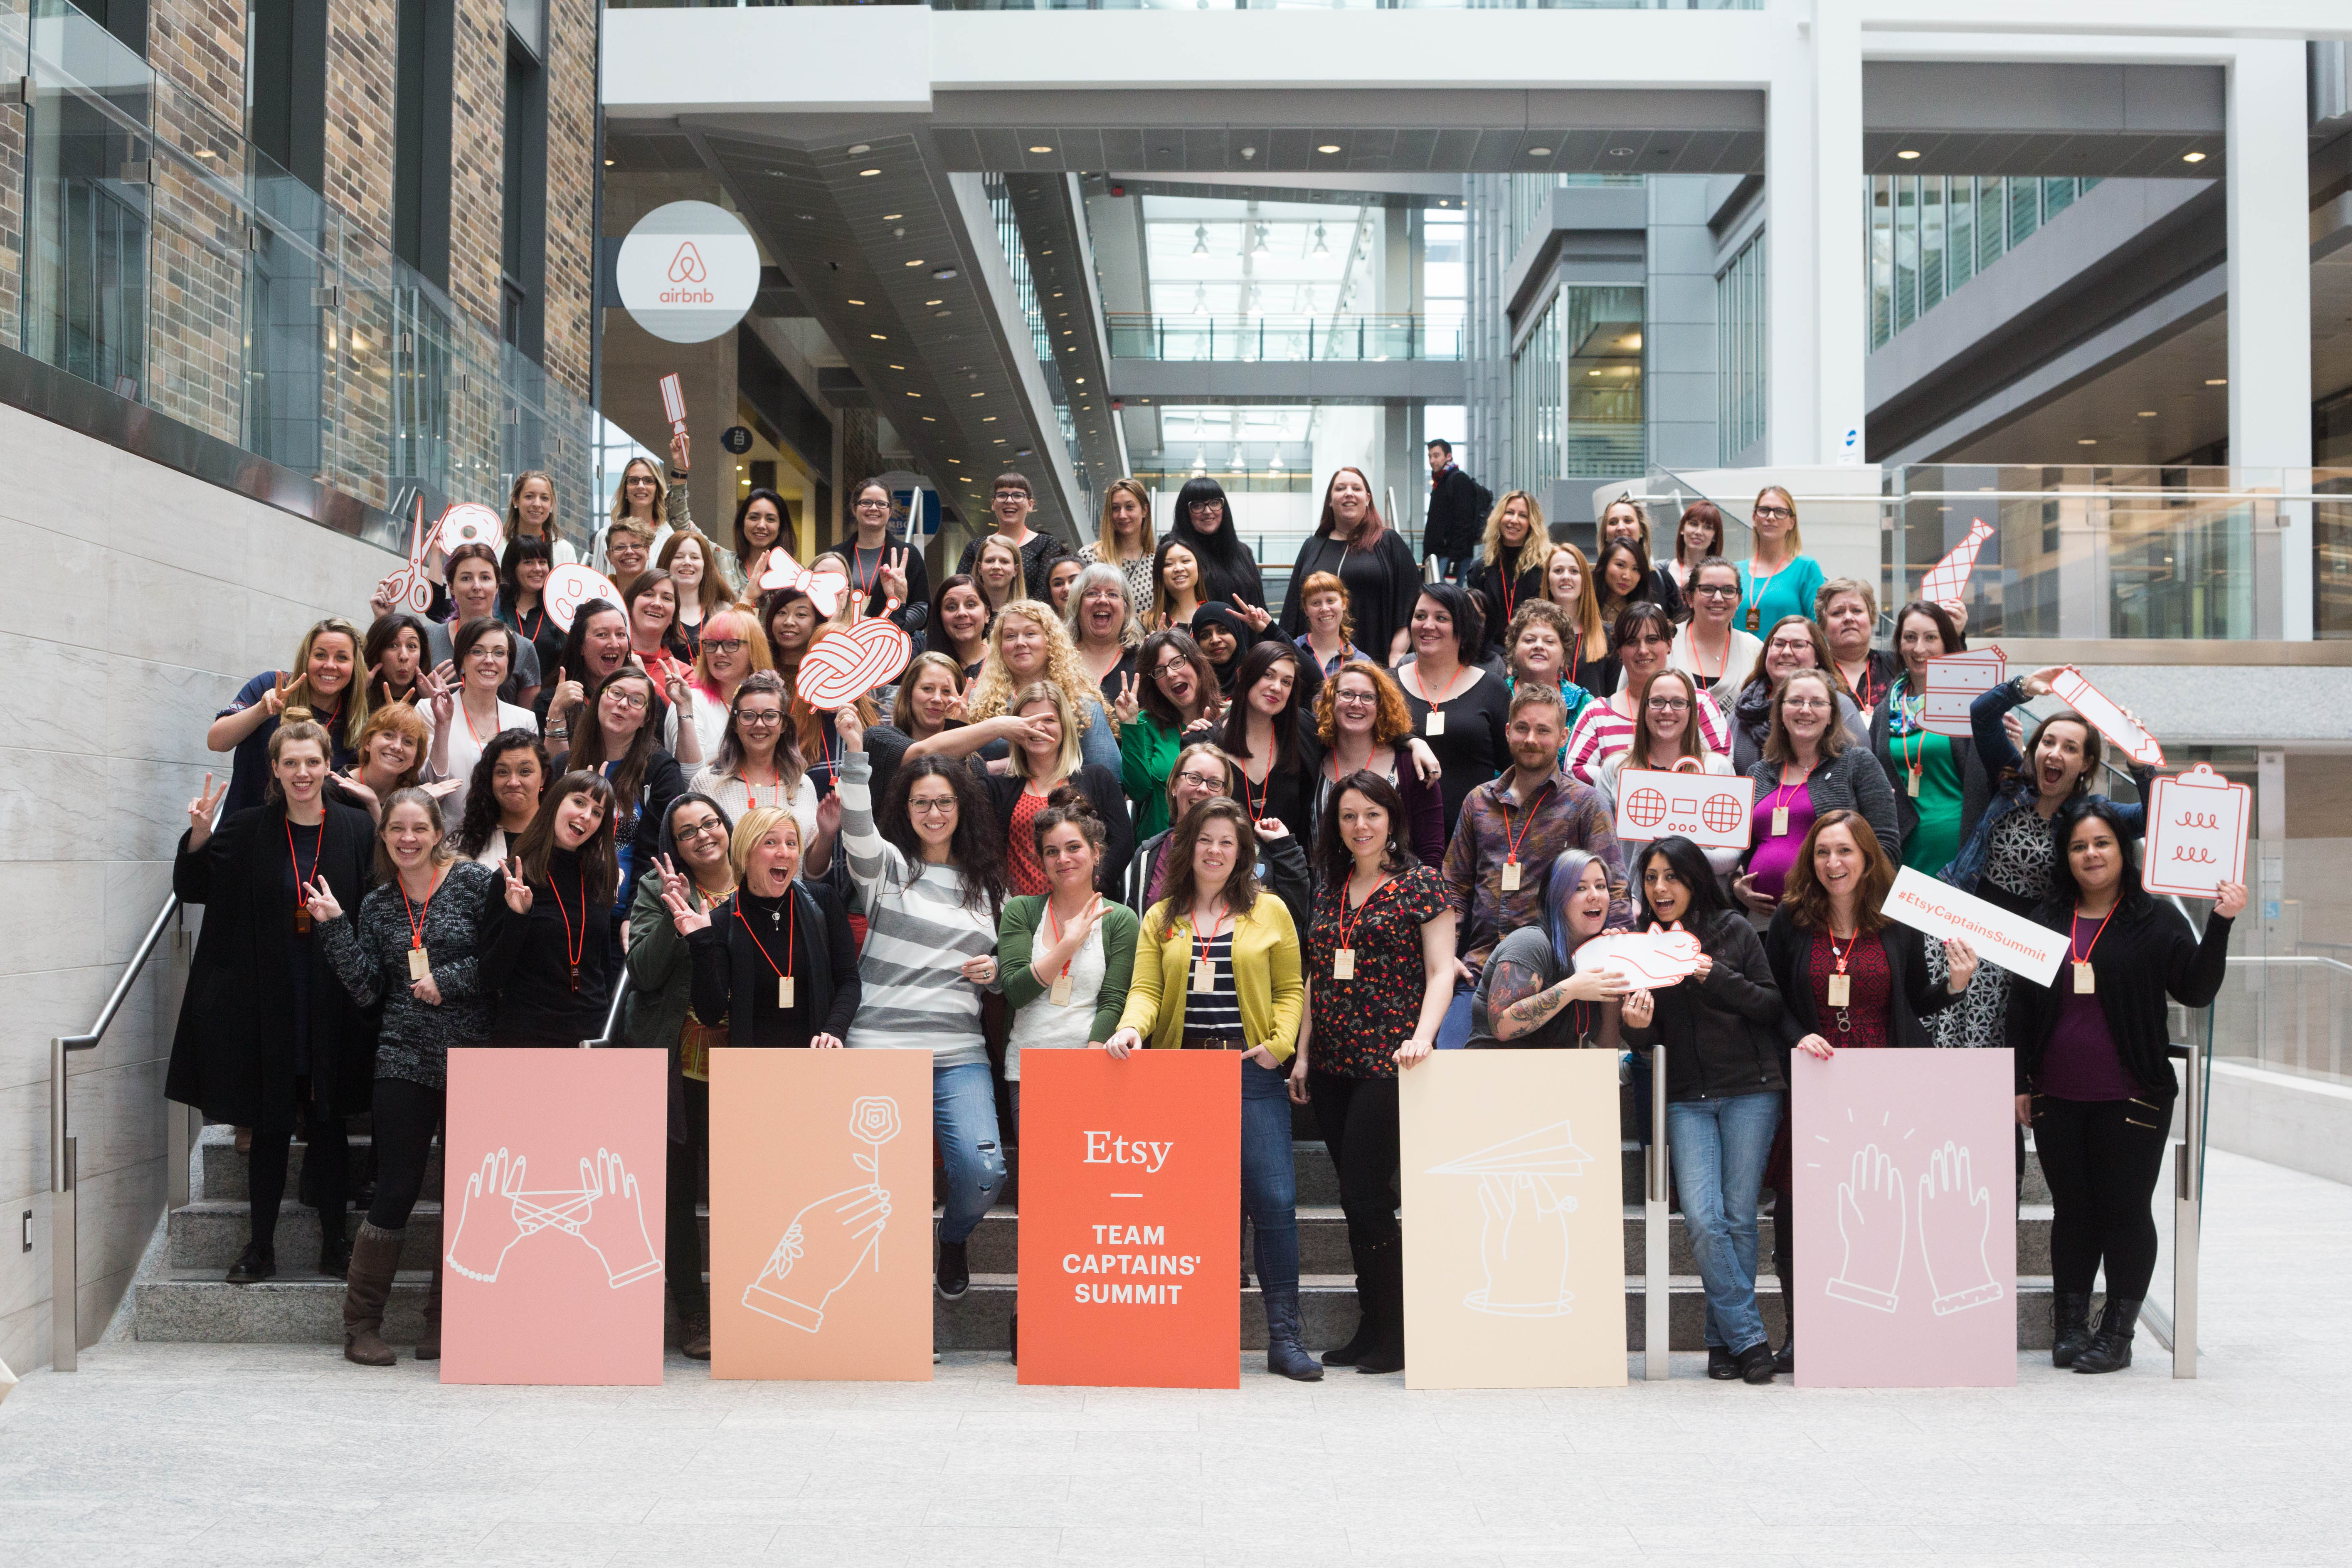 Etsy Captains' Summit 2016